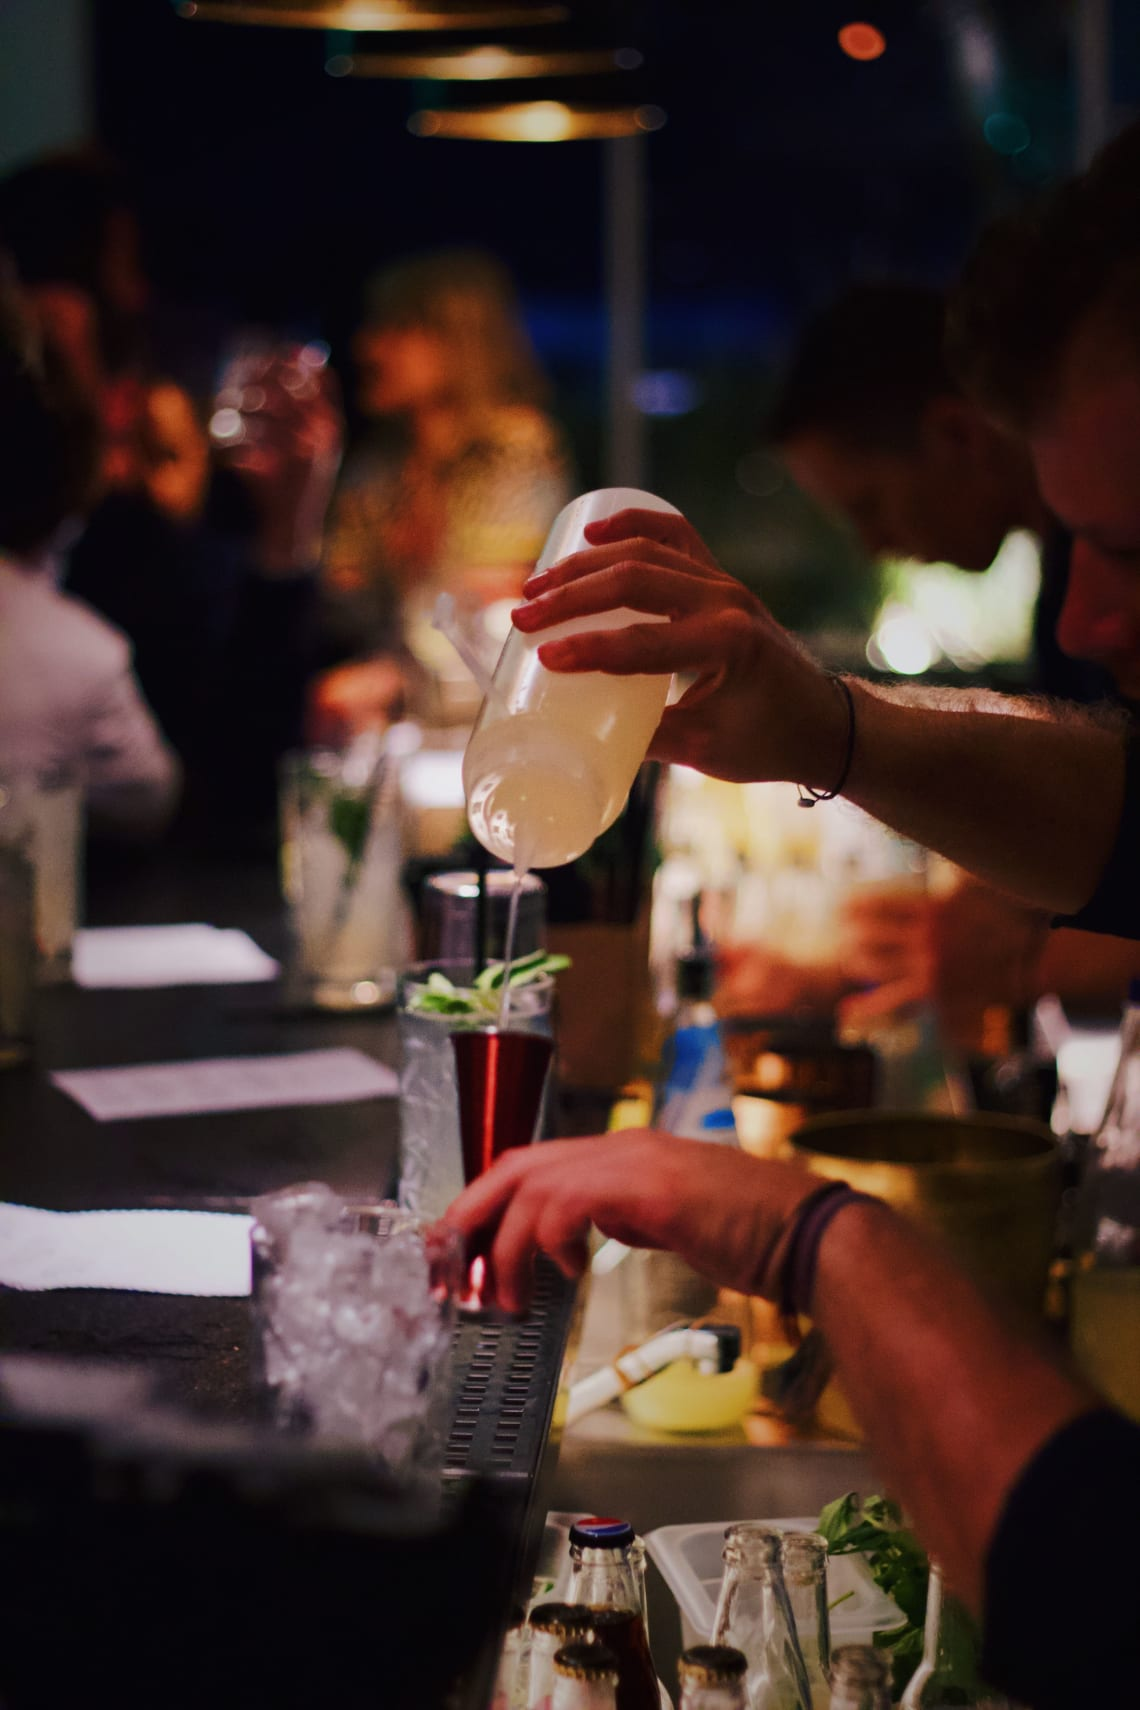 Become a traveling bartender